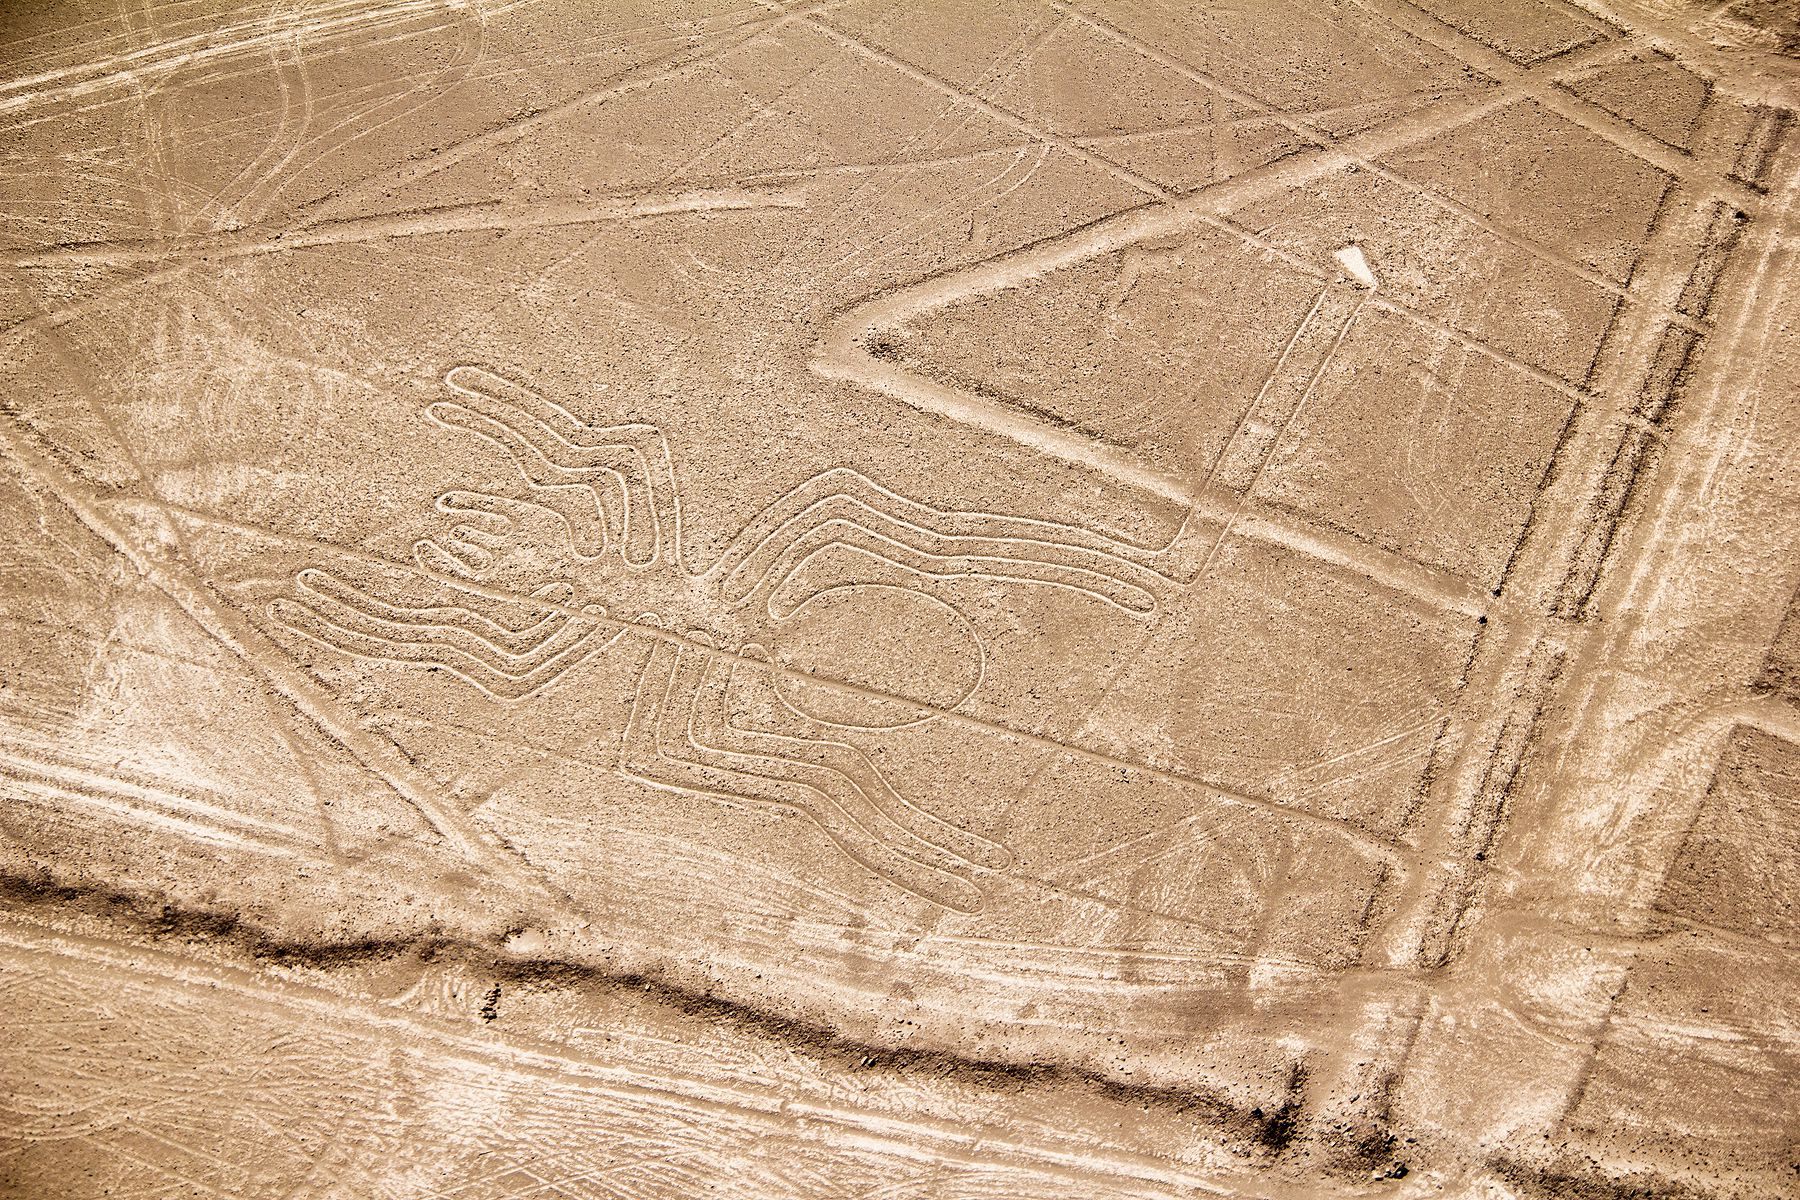 An aerial view of the Nazca Lines